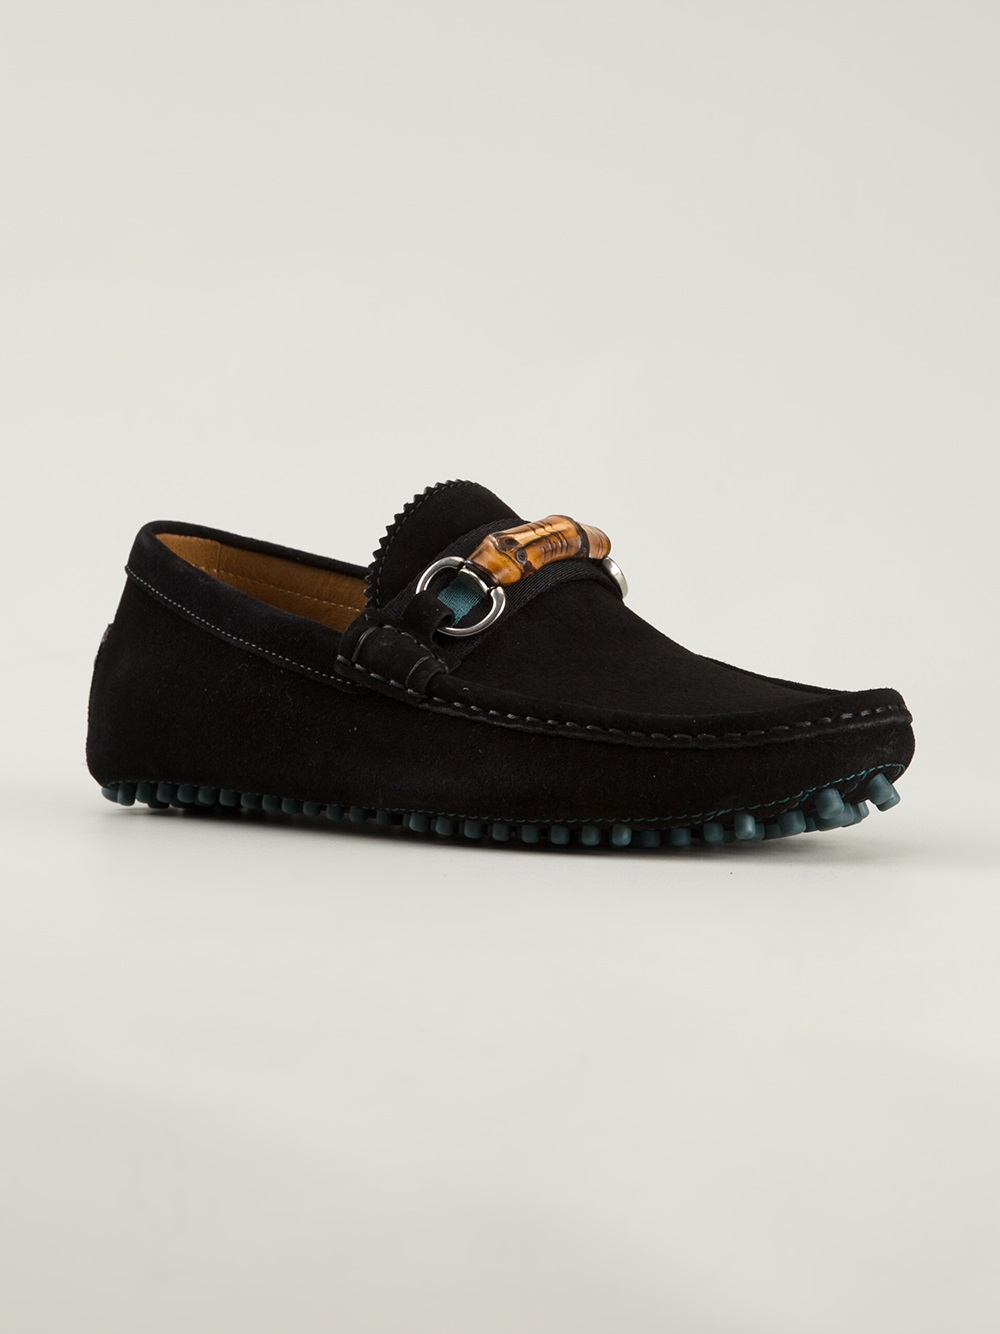 Gucci 1953 Classic Loafers in Natural for Men - Lyst